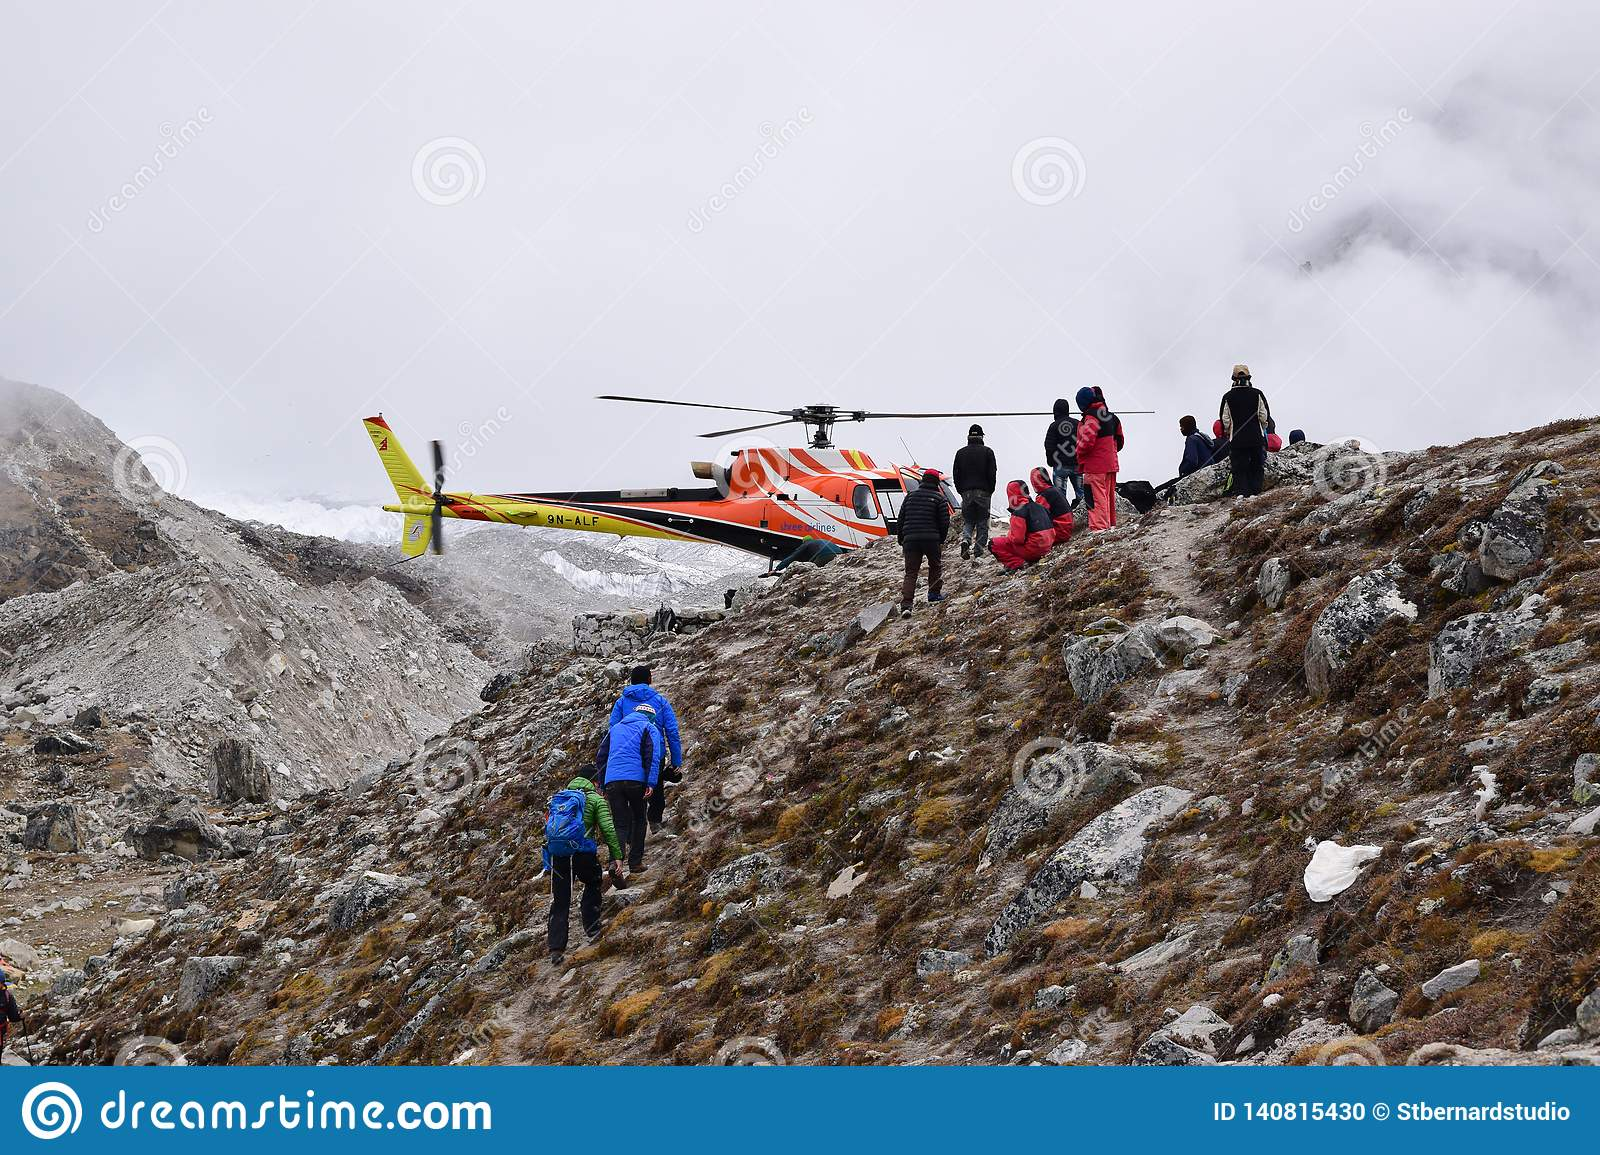 Emergency evacuation chopper helicopter for extreme weather cases at snow covered Everest Base Camp EBC, Nepal